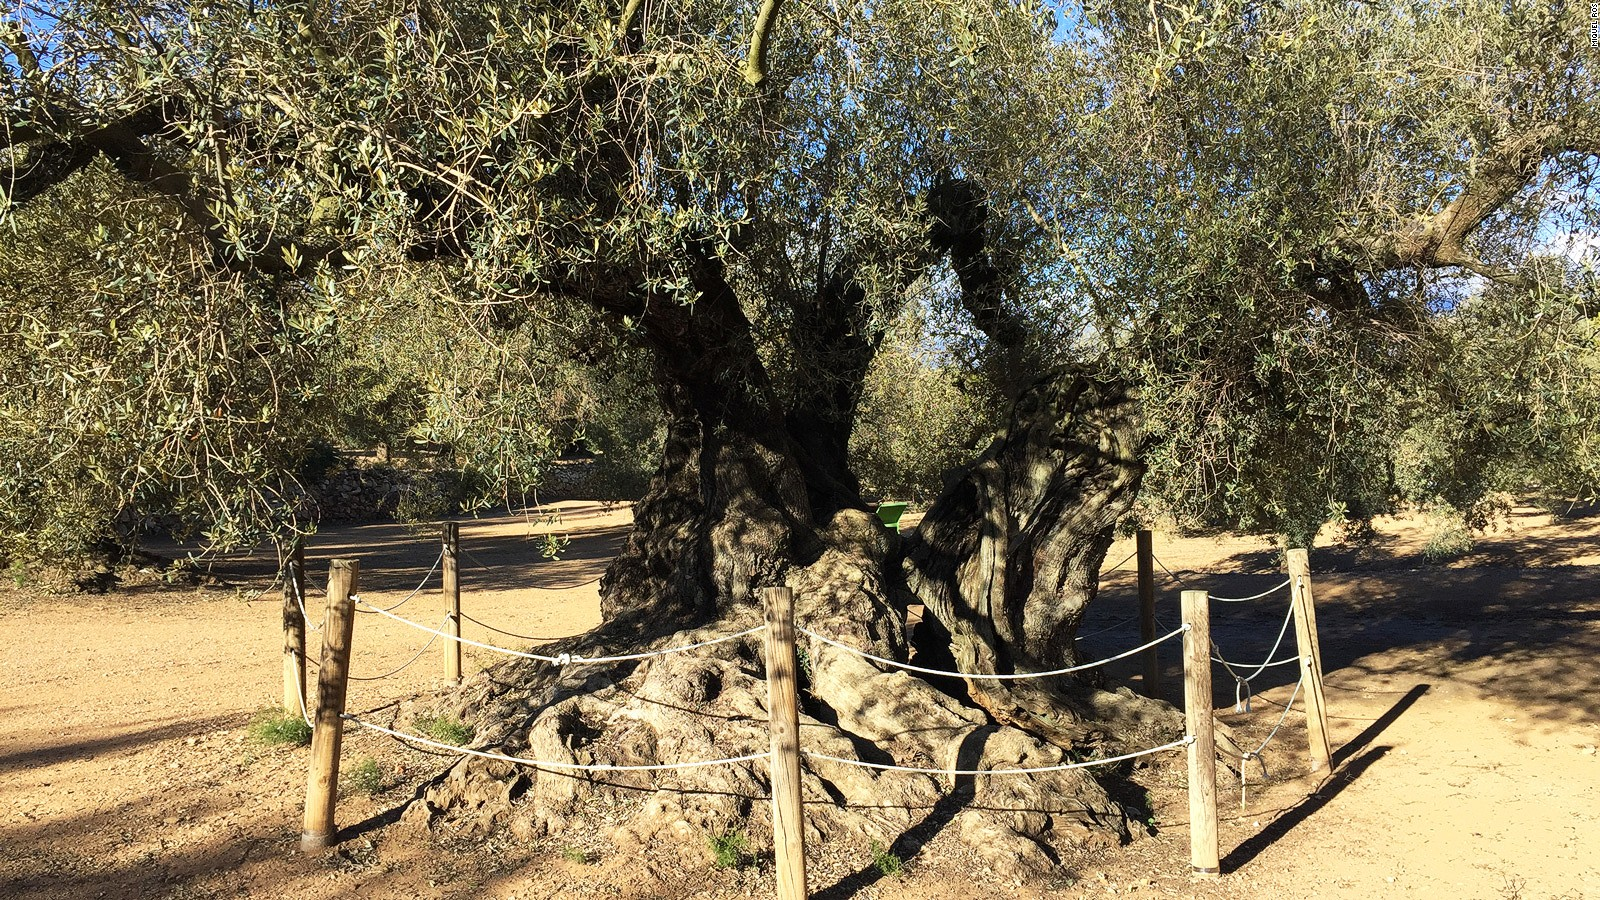 Spain\'s ancient olive trees: New taste for their olive oil | CNN Travel